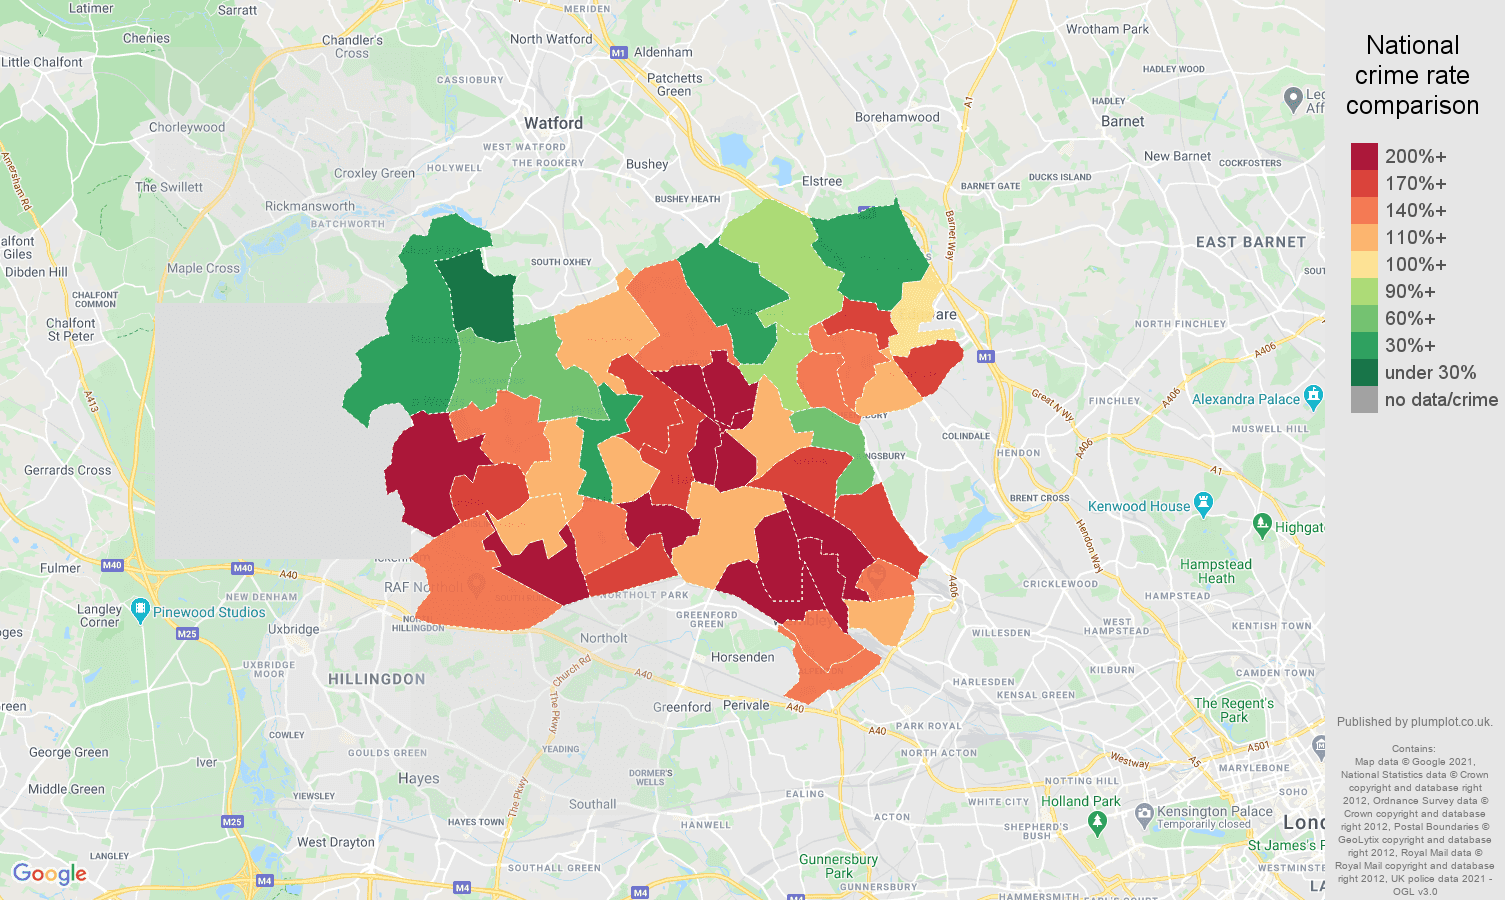 Harrow drugs crime rate comparison map